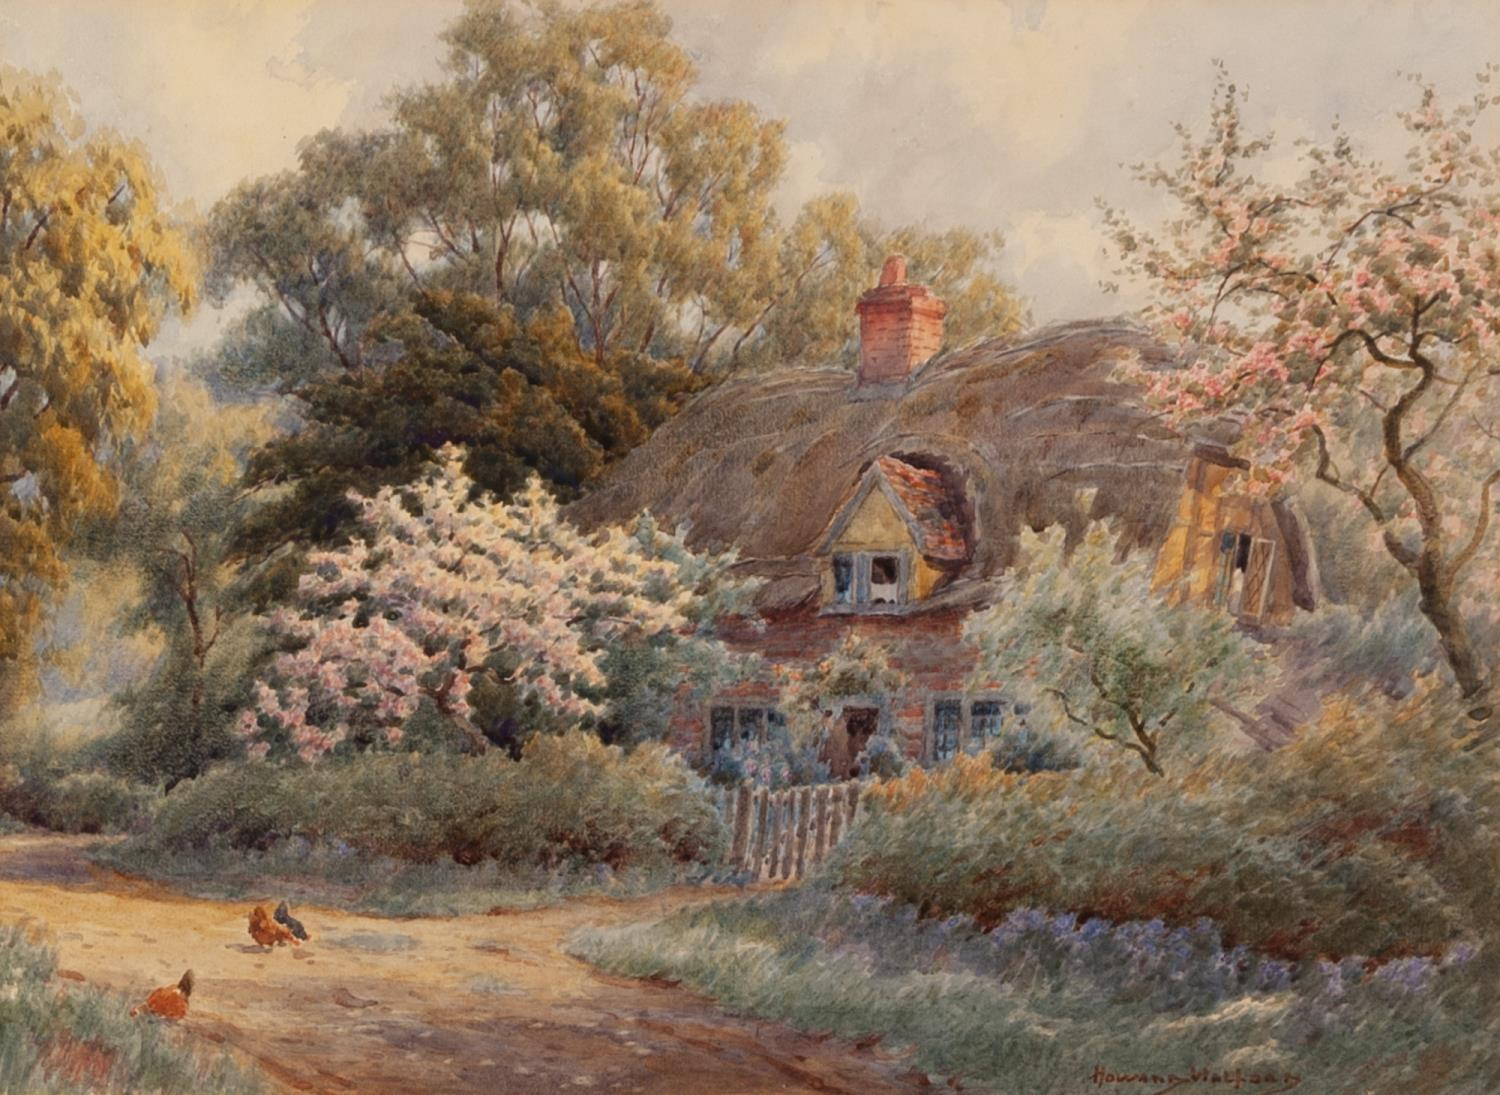 Lot 178 - HOWARD NEVILLE WALFORD (1864-1950) WATERCOLOUR DRAWING Chickens on a country lane in front of a